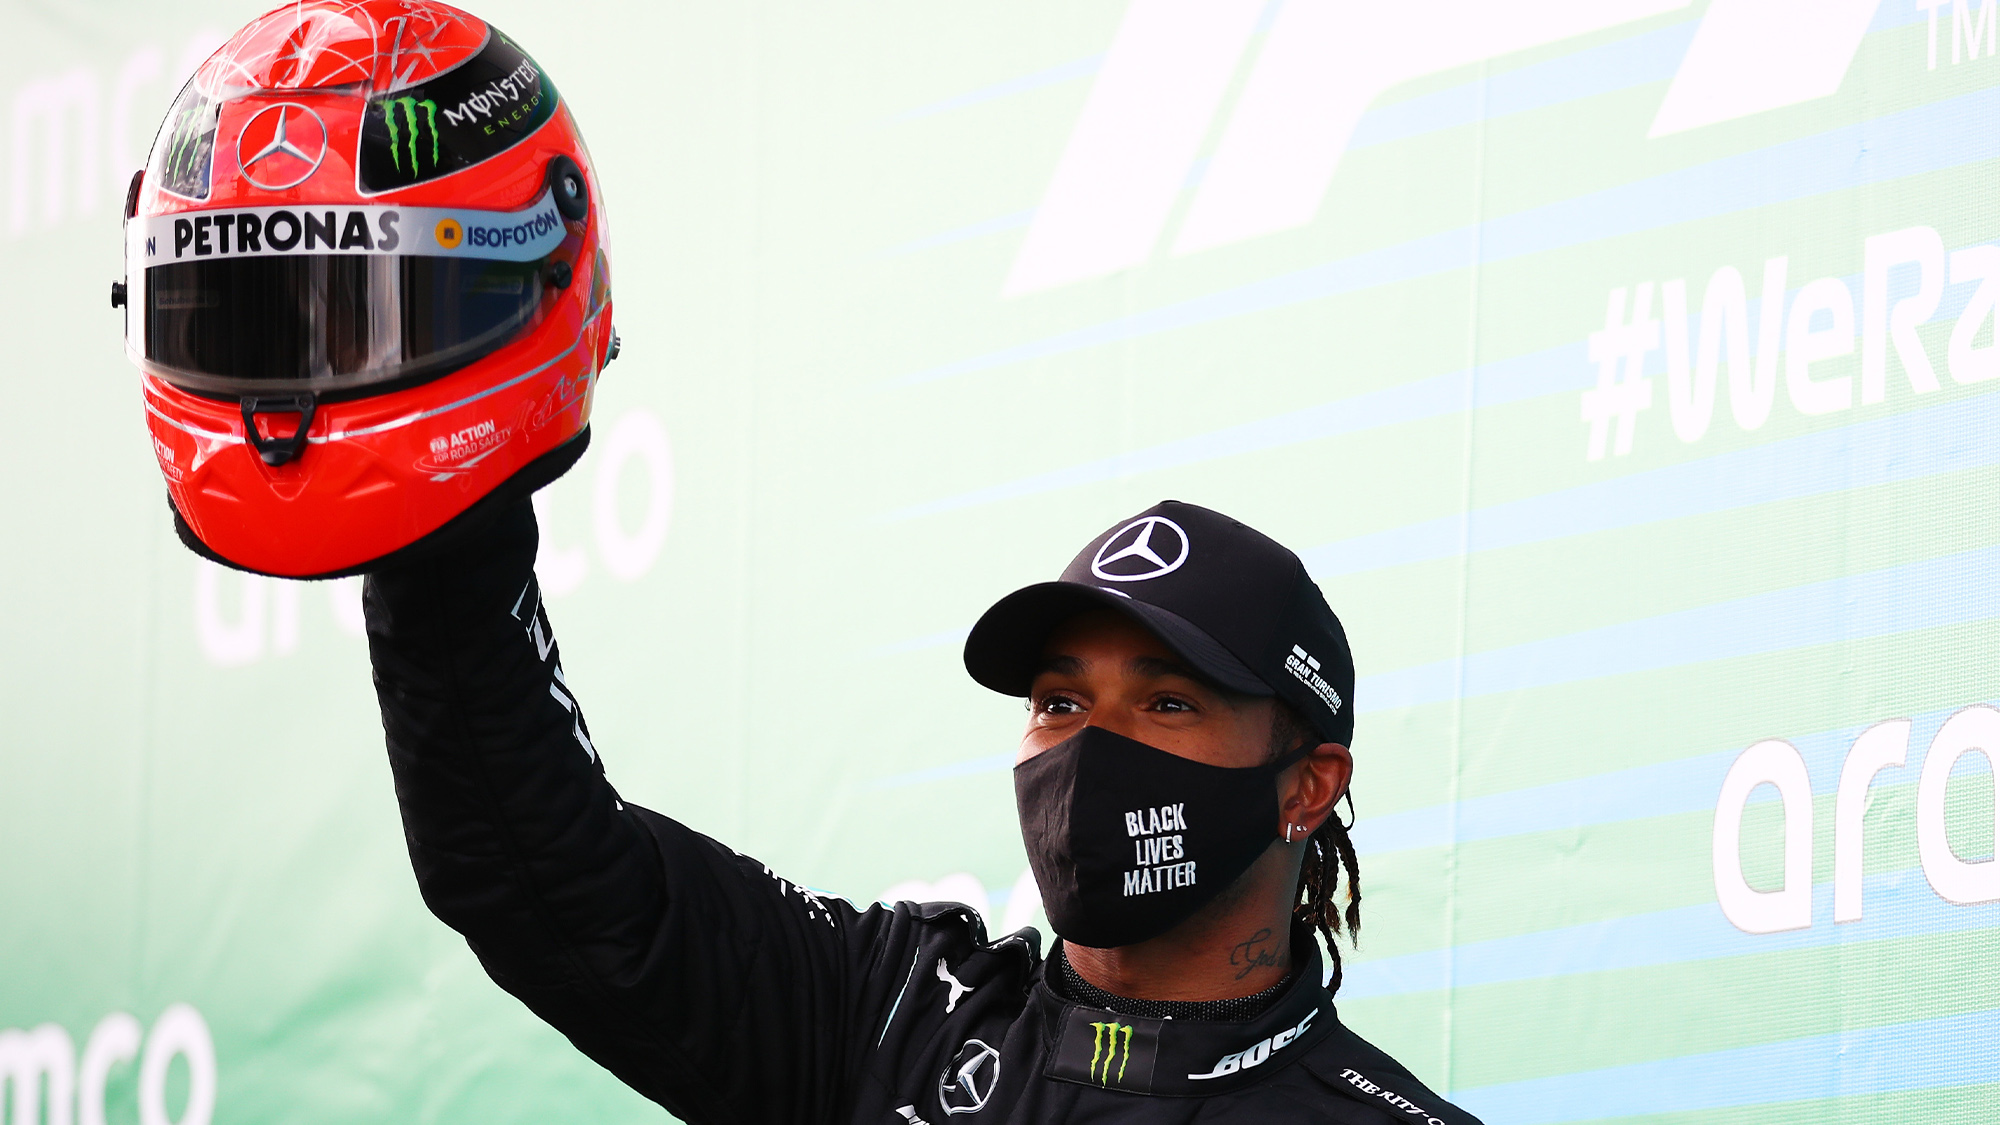 Lewis Hamilton holds a Michael Schumachr helmet in the air after equaling his record F1 wins at the Nurburgring in the 2020 Eifel Grand Prix